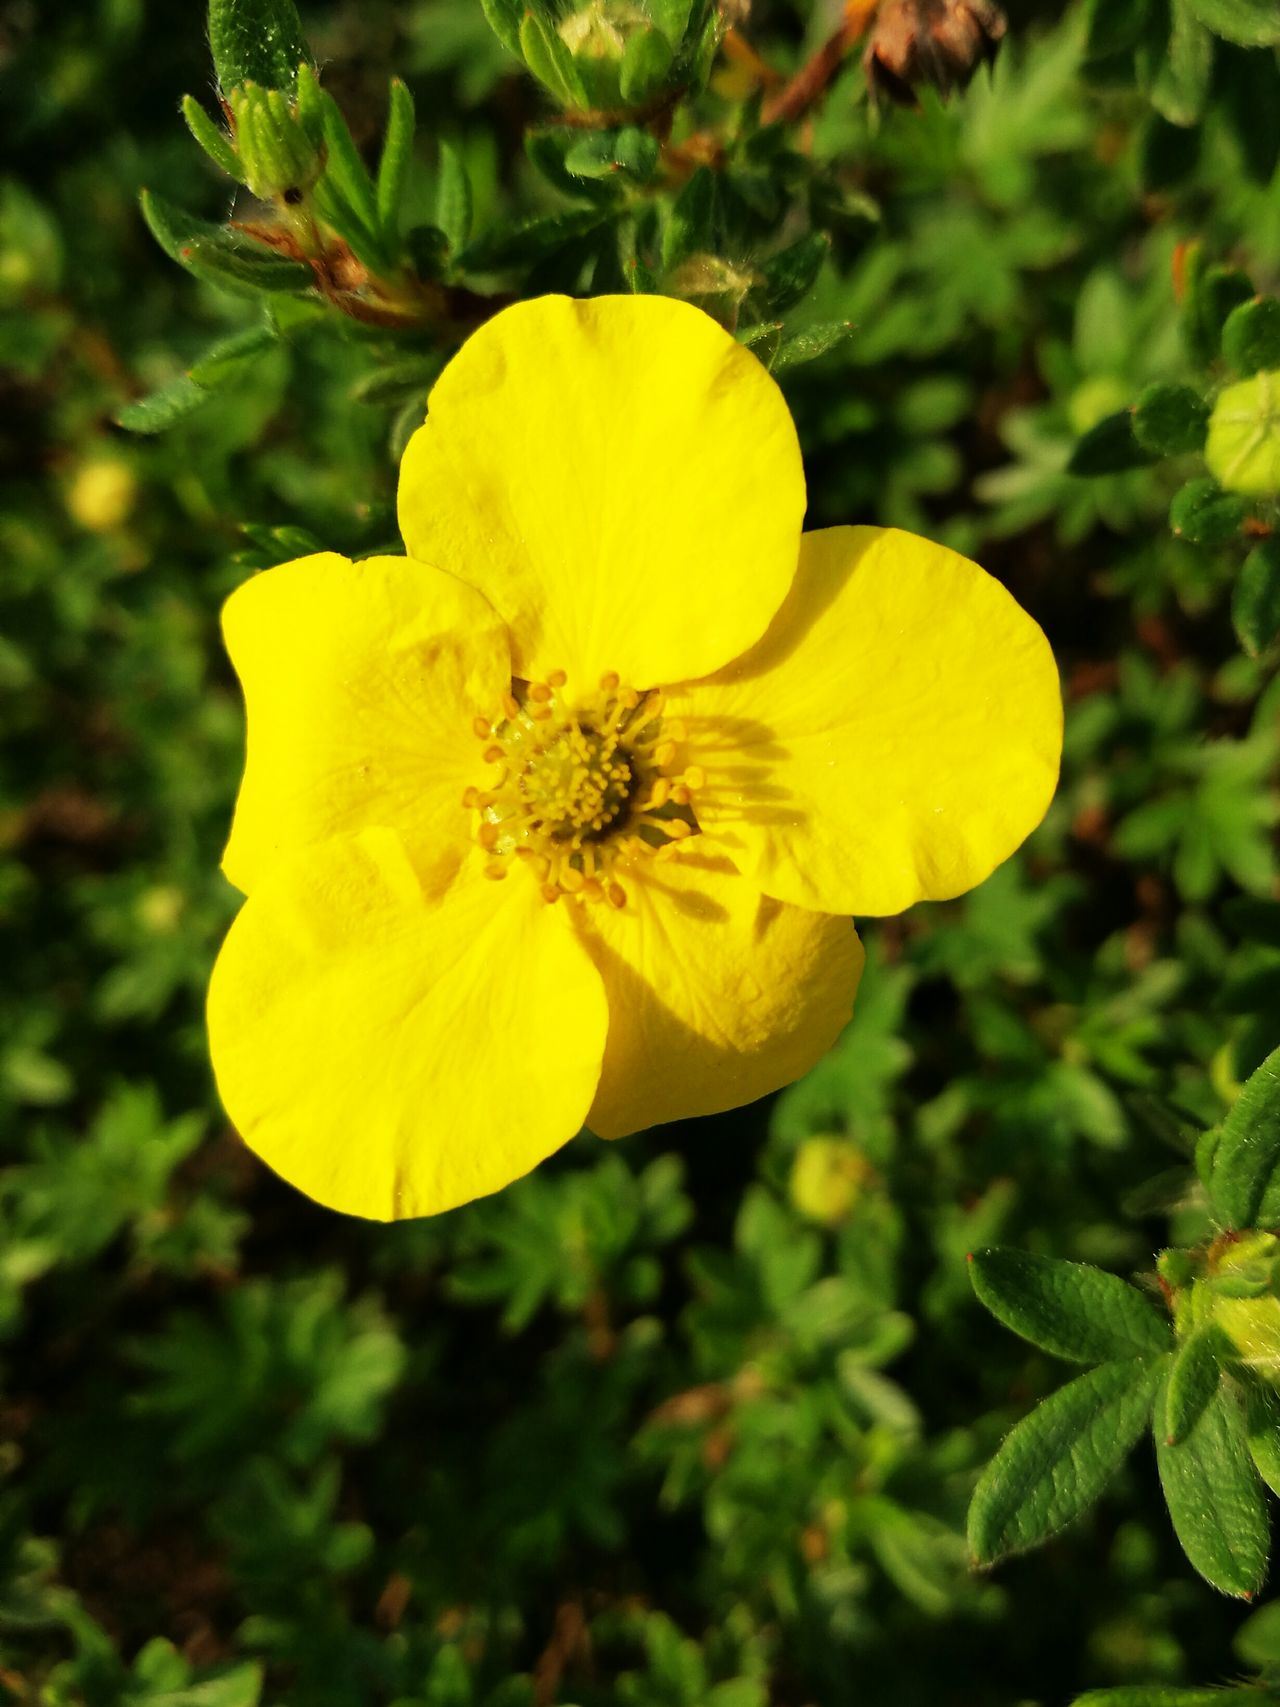 Flowers Flower Nature Nature Photography Yellow Flower Spring Summer Photography Taking Photos Nature's Diversities